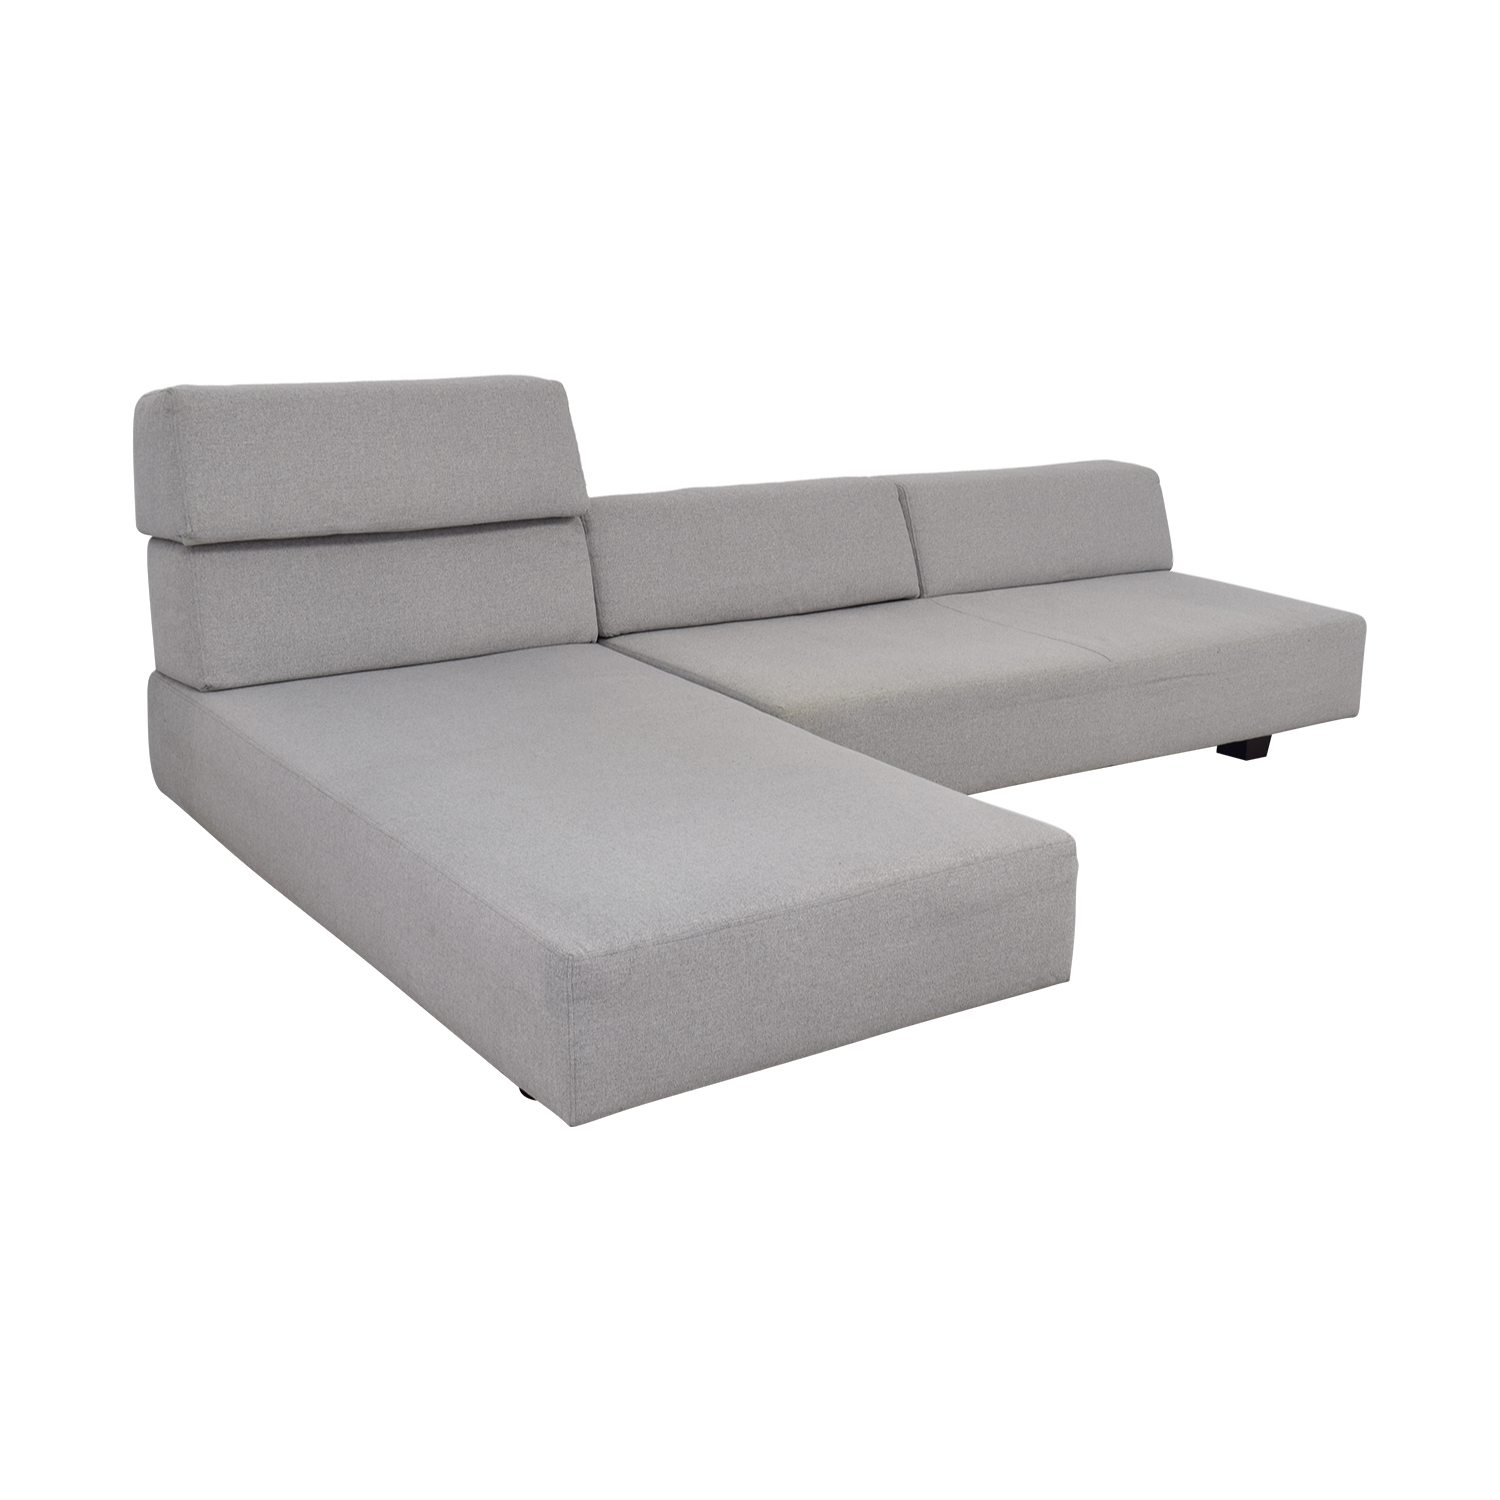 ... West Elm West Elm Tillary Chenille Tweed Feather Gray Modular Seating  Sofa Sectionals ...